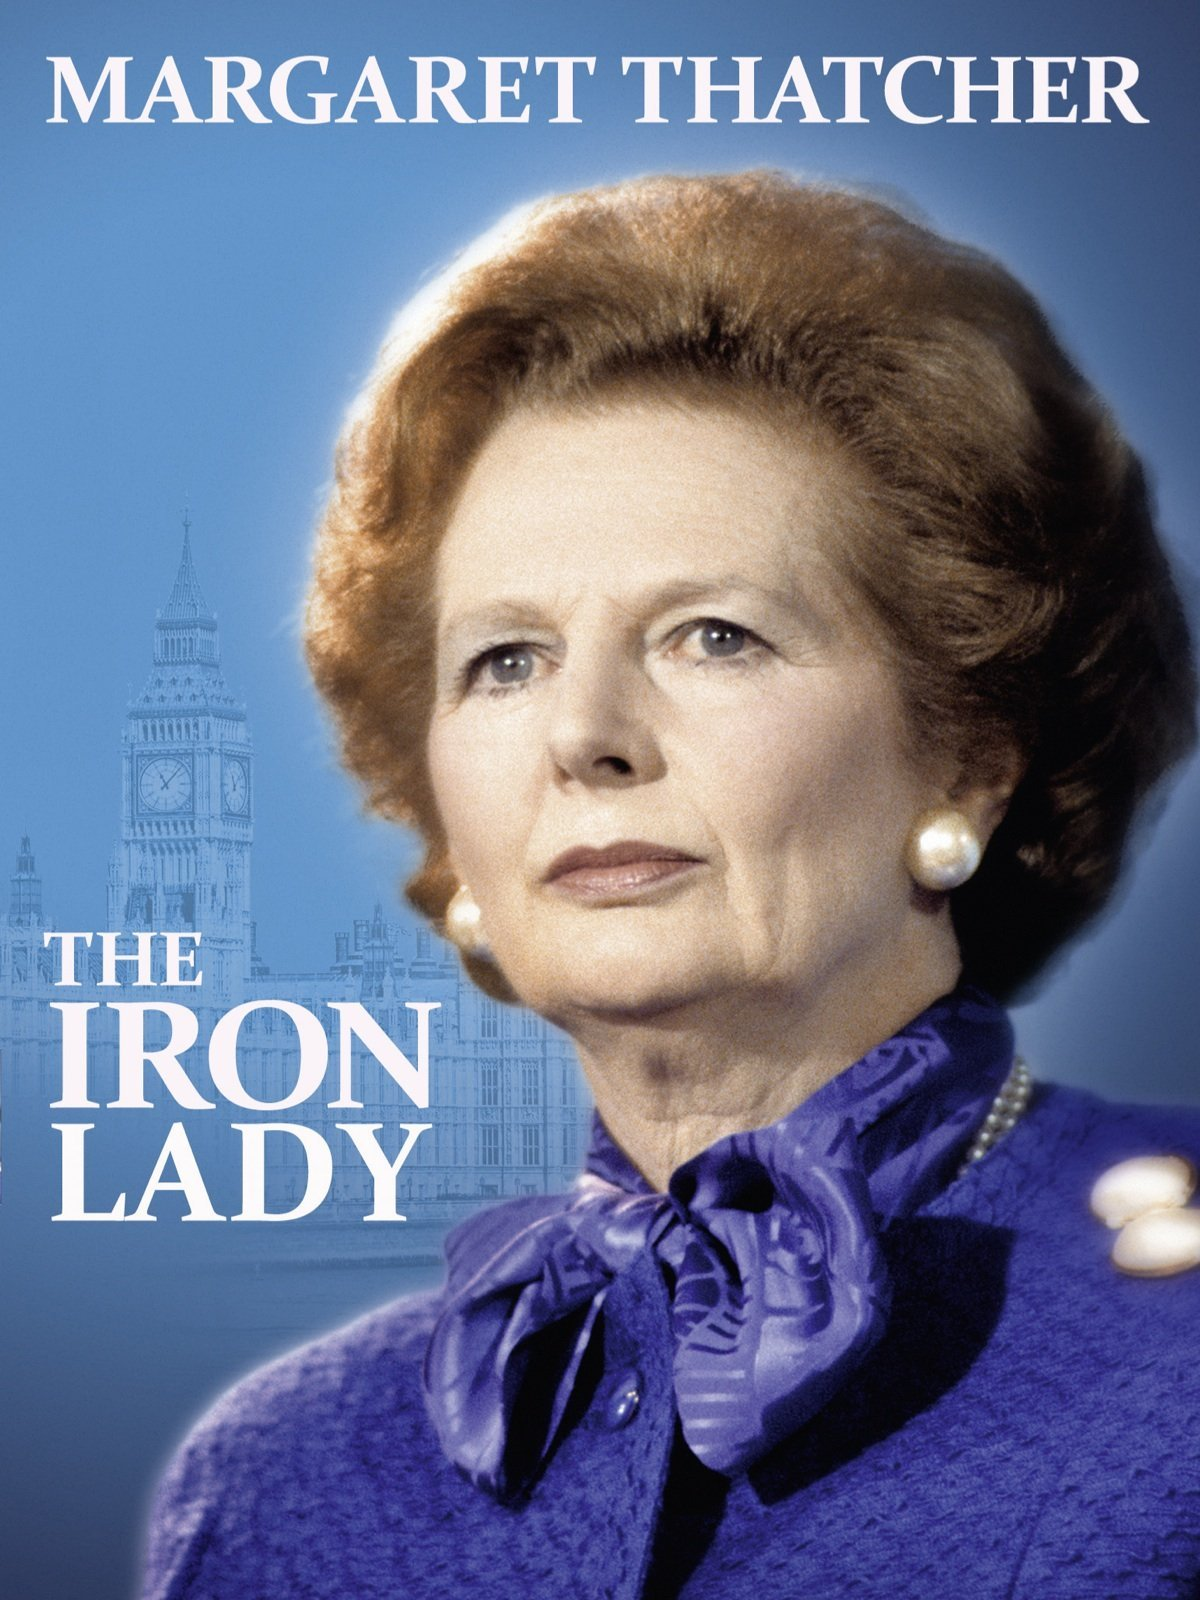 Watch Margaret Thatcher The Iron Lady Prime Video